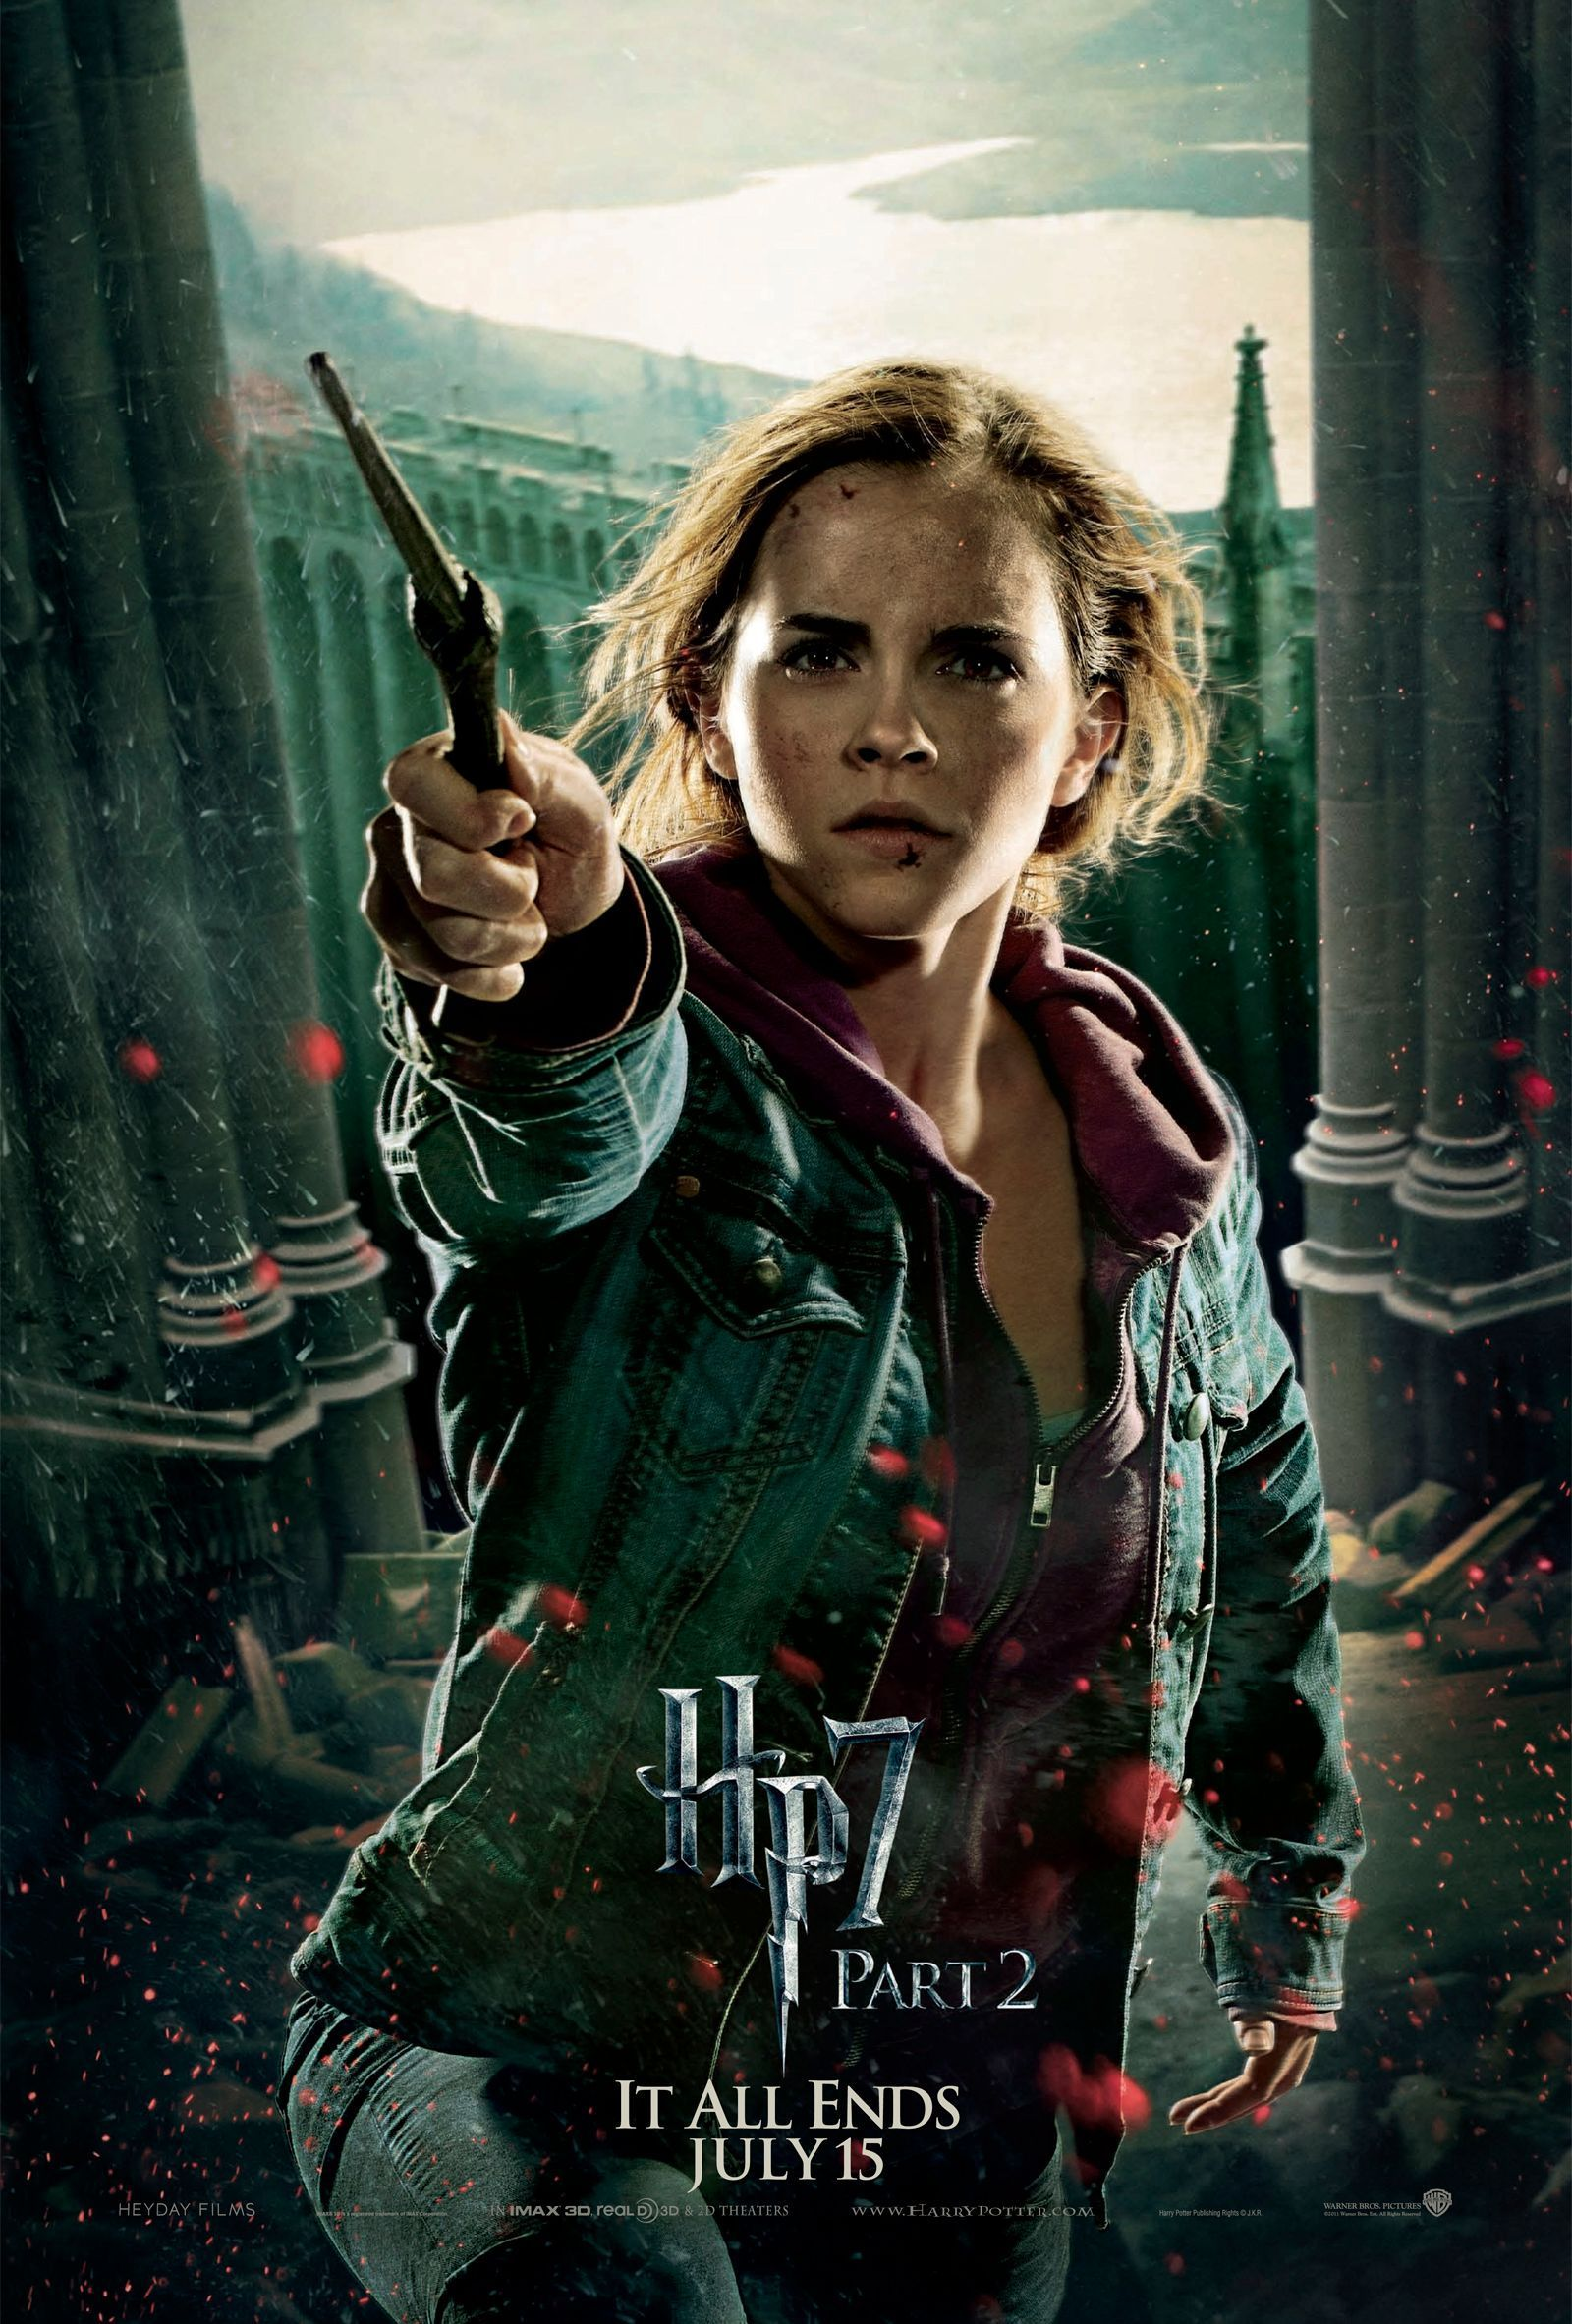 Harry Potter images Deathly Hallows Part 2 Action Poster ...